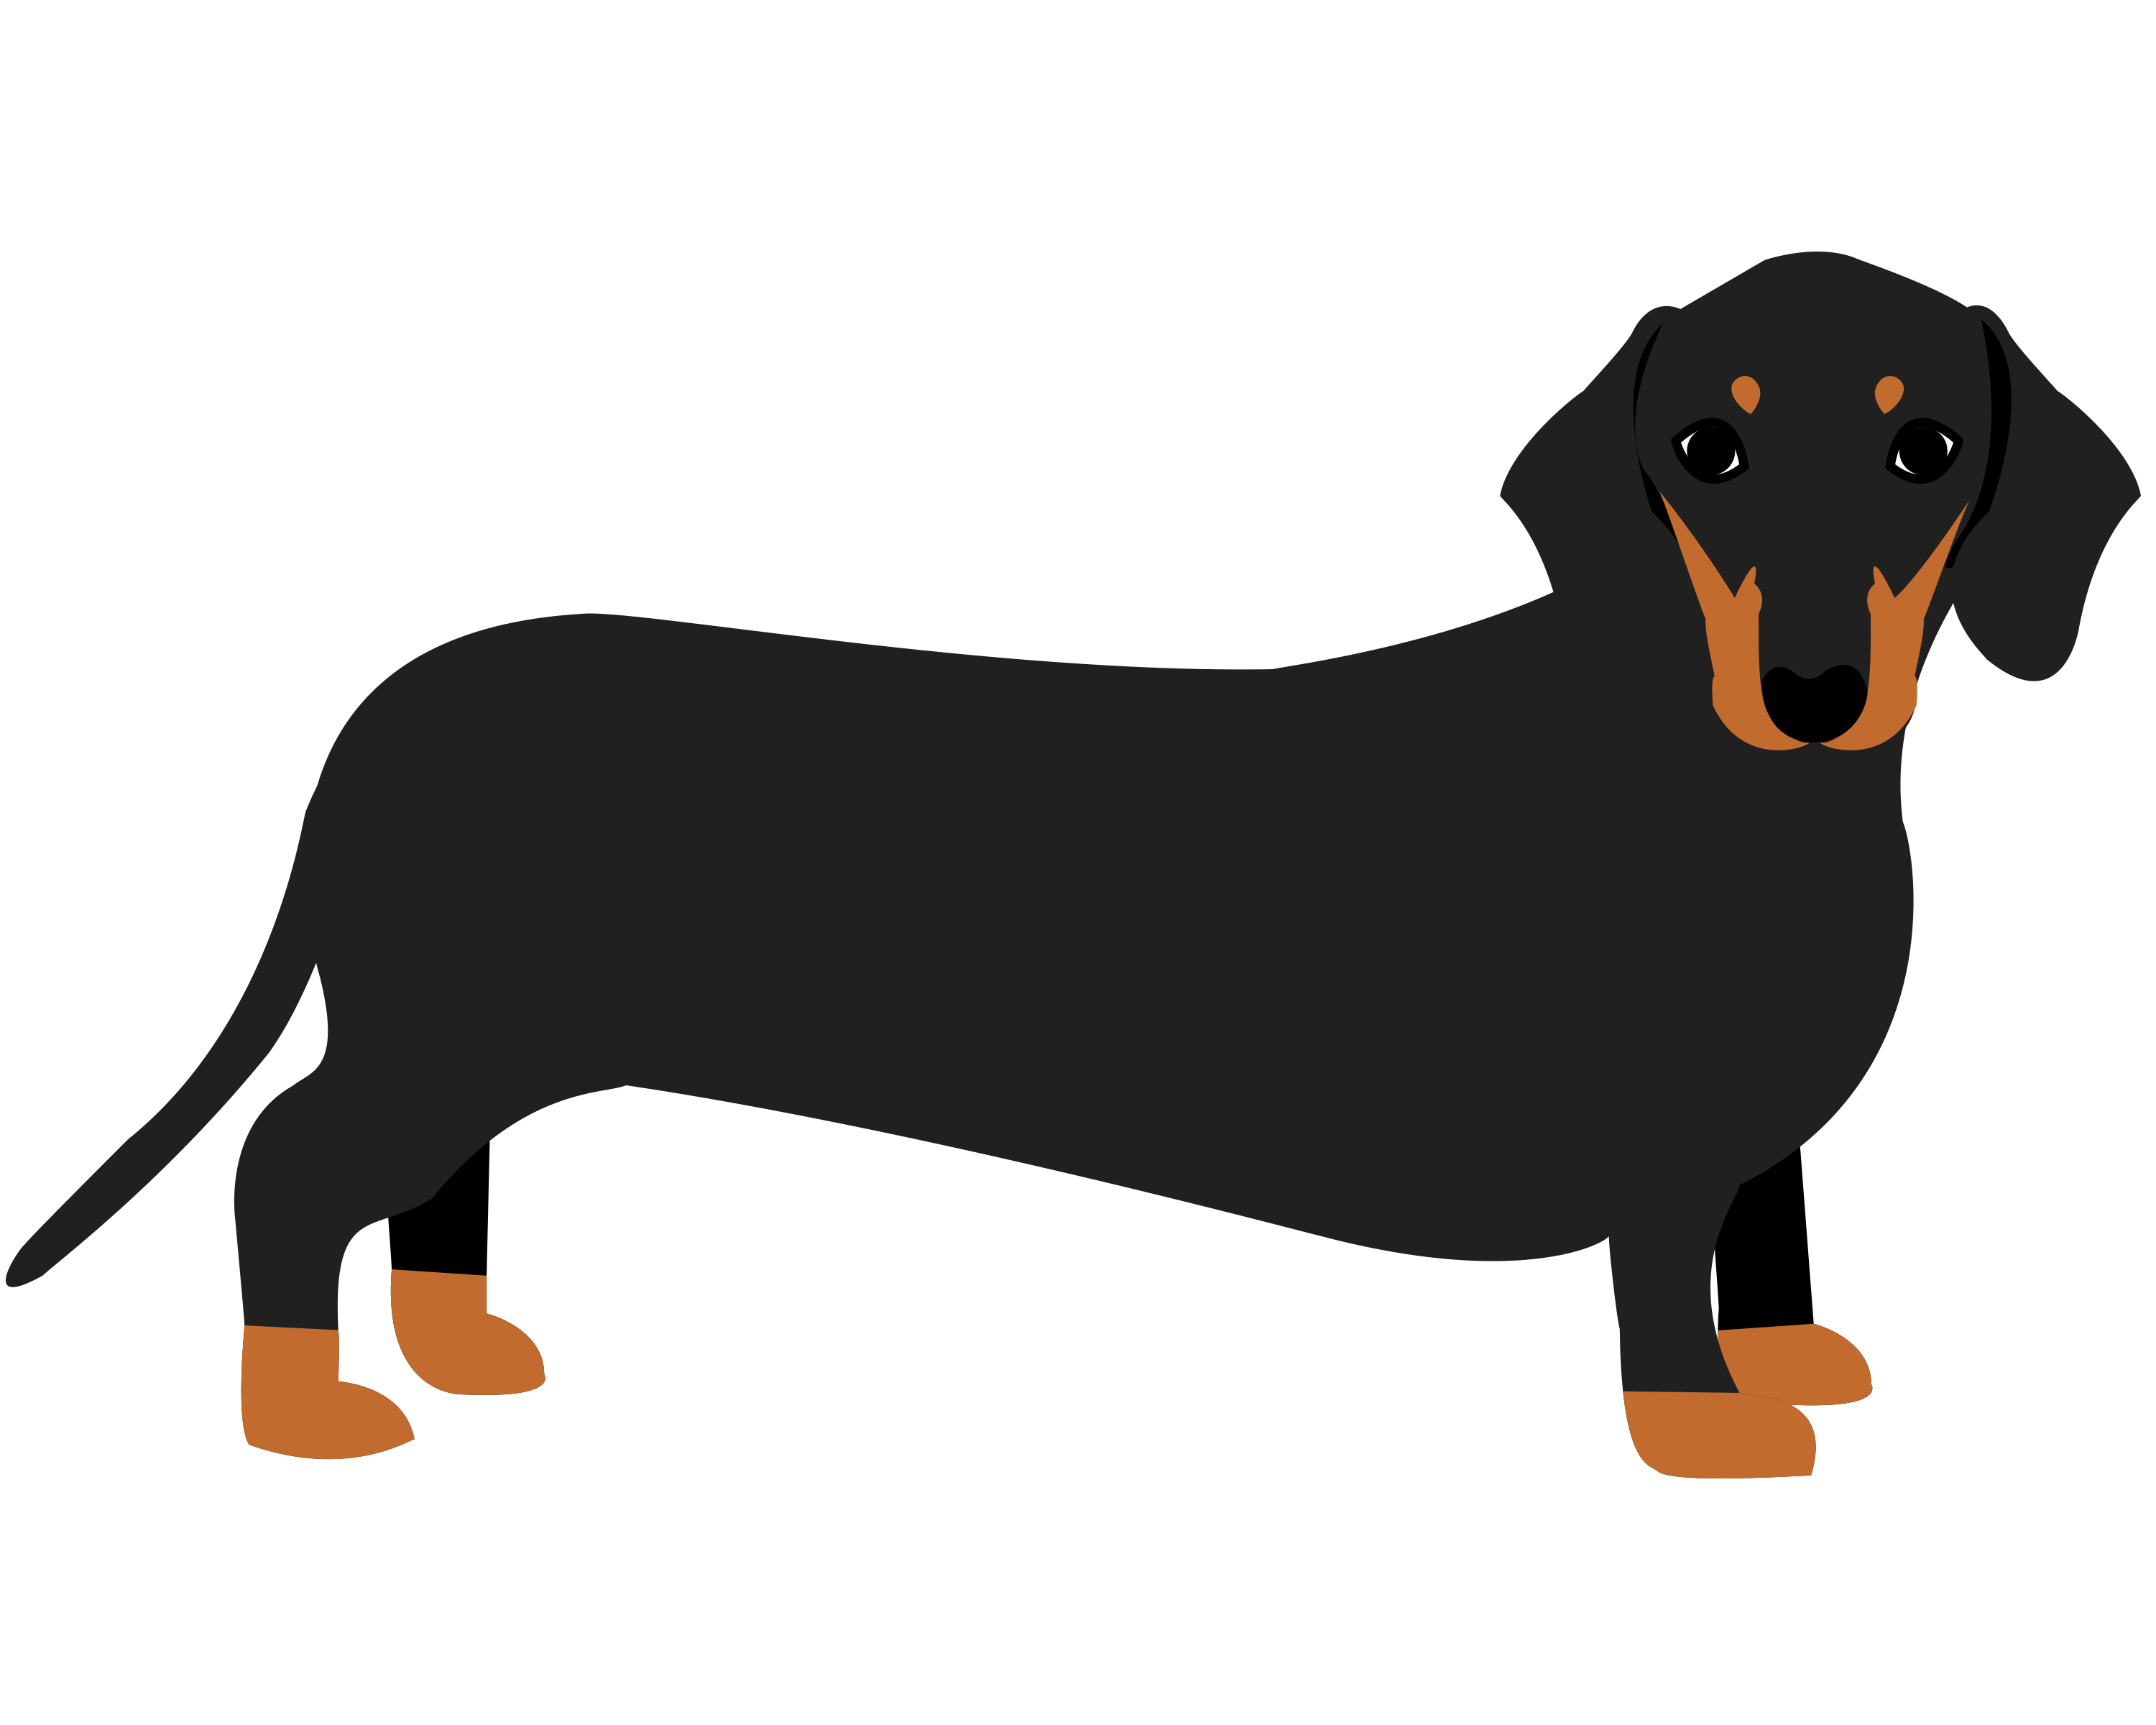 14 cliparts for free. Download Dachshund clipart sausage dog and use.